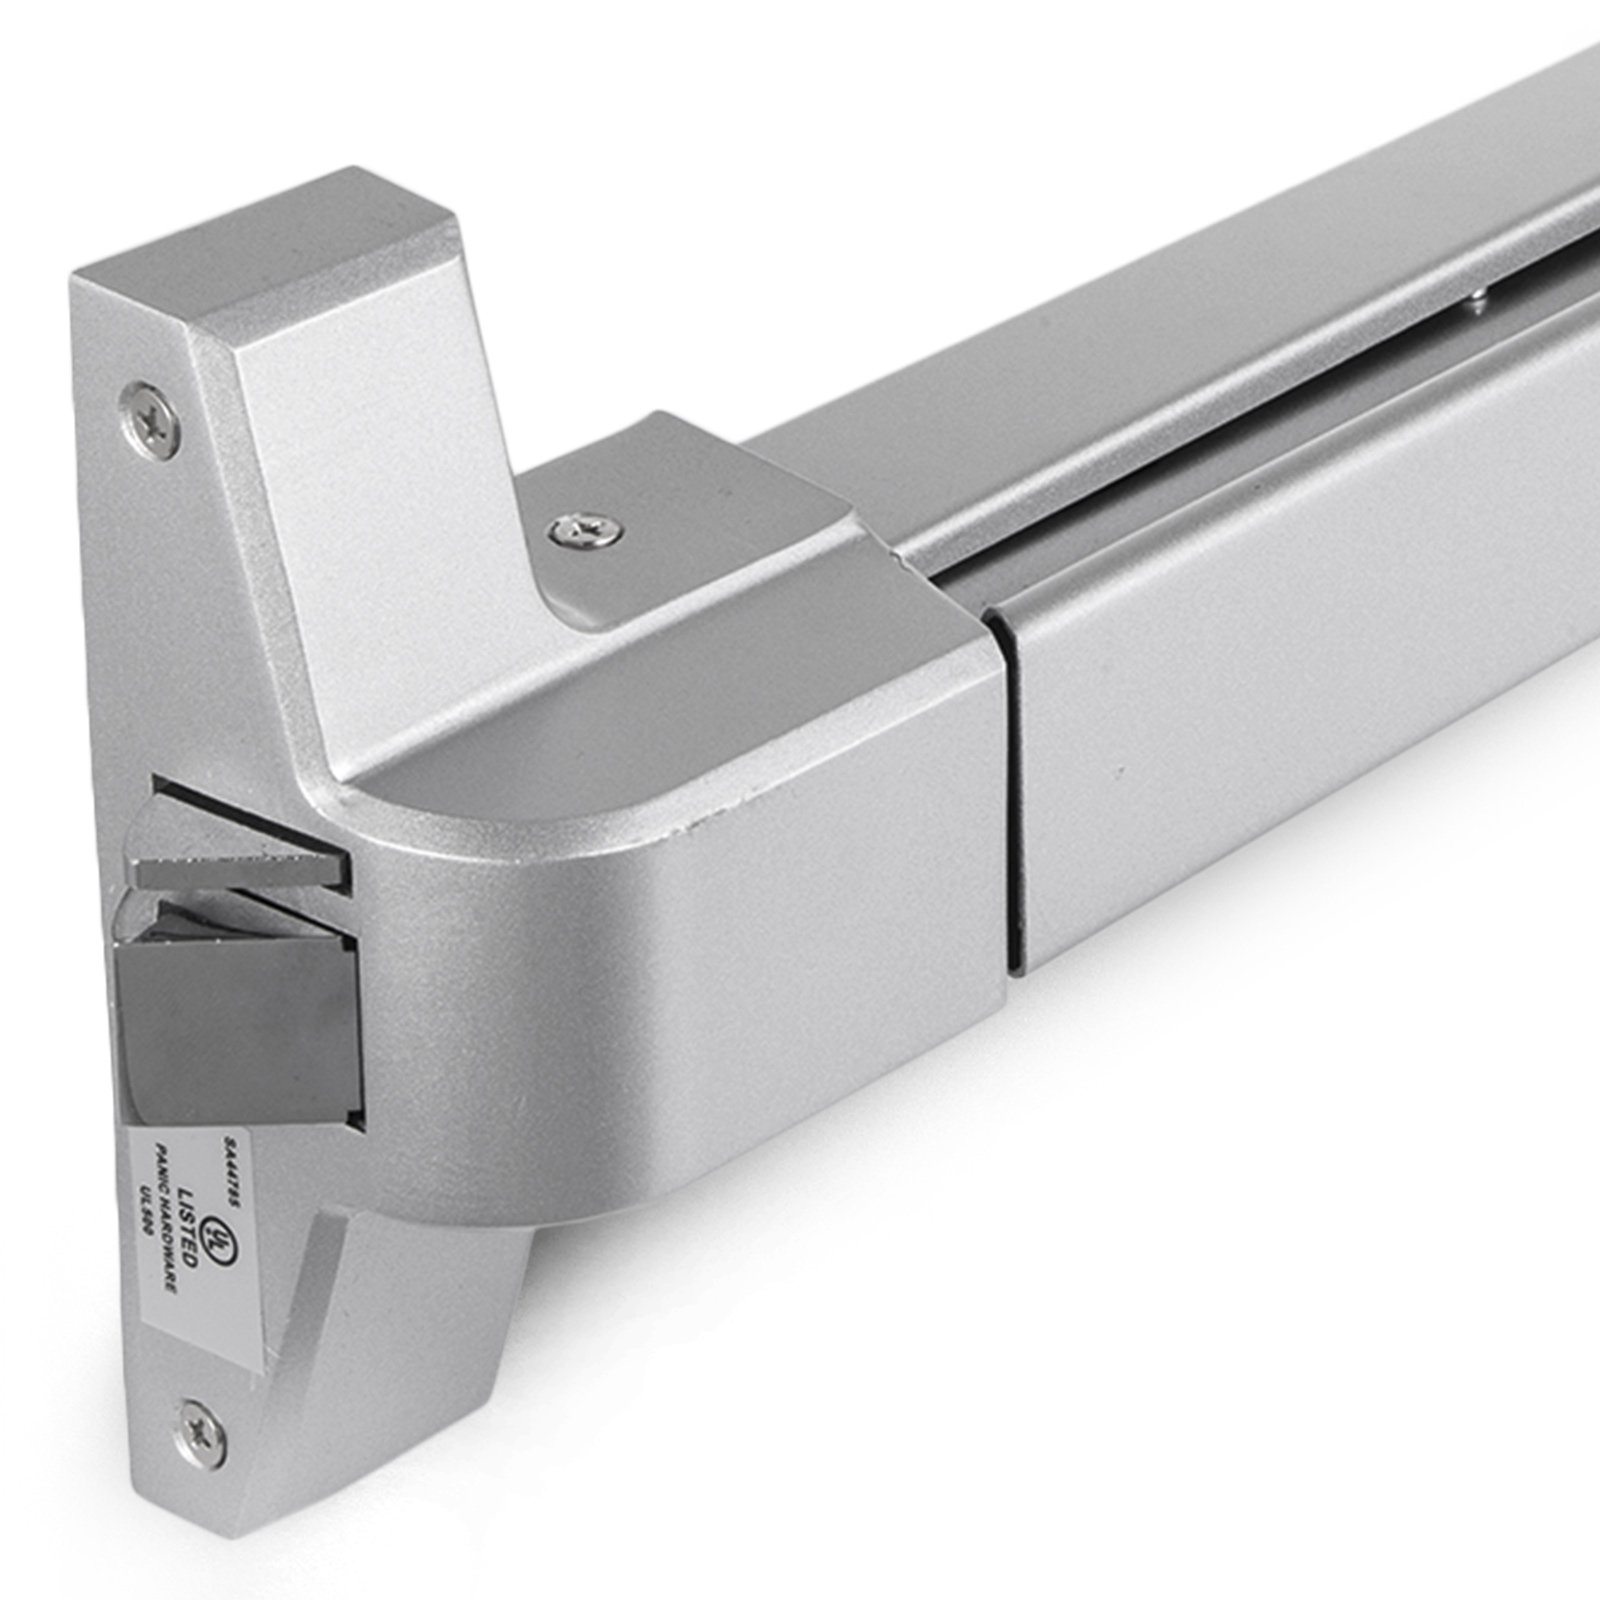 Happybuy Door Push Bar Panic Exit Device with Dogging Key and Exterior Lever Commercial Emergency Exit Bar Panic Exit Device for Wood Metal Door Panic Exit Bar (Push bar with Dogging Key and Lever) by Happybuy (Image #10)